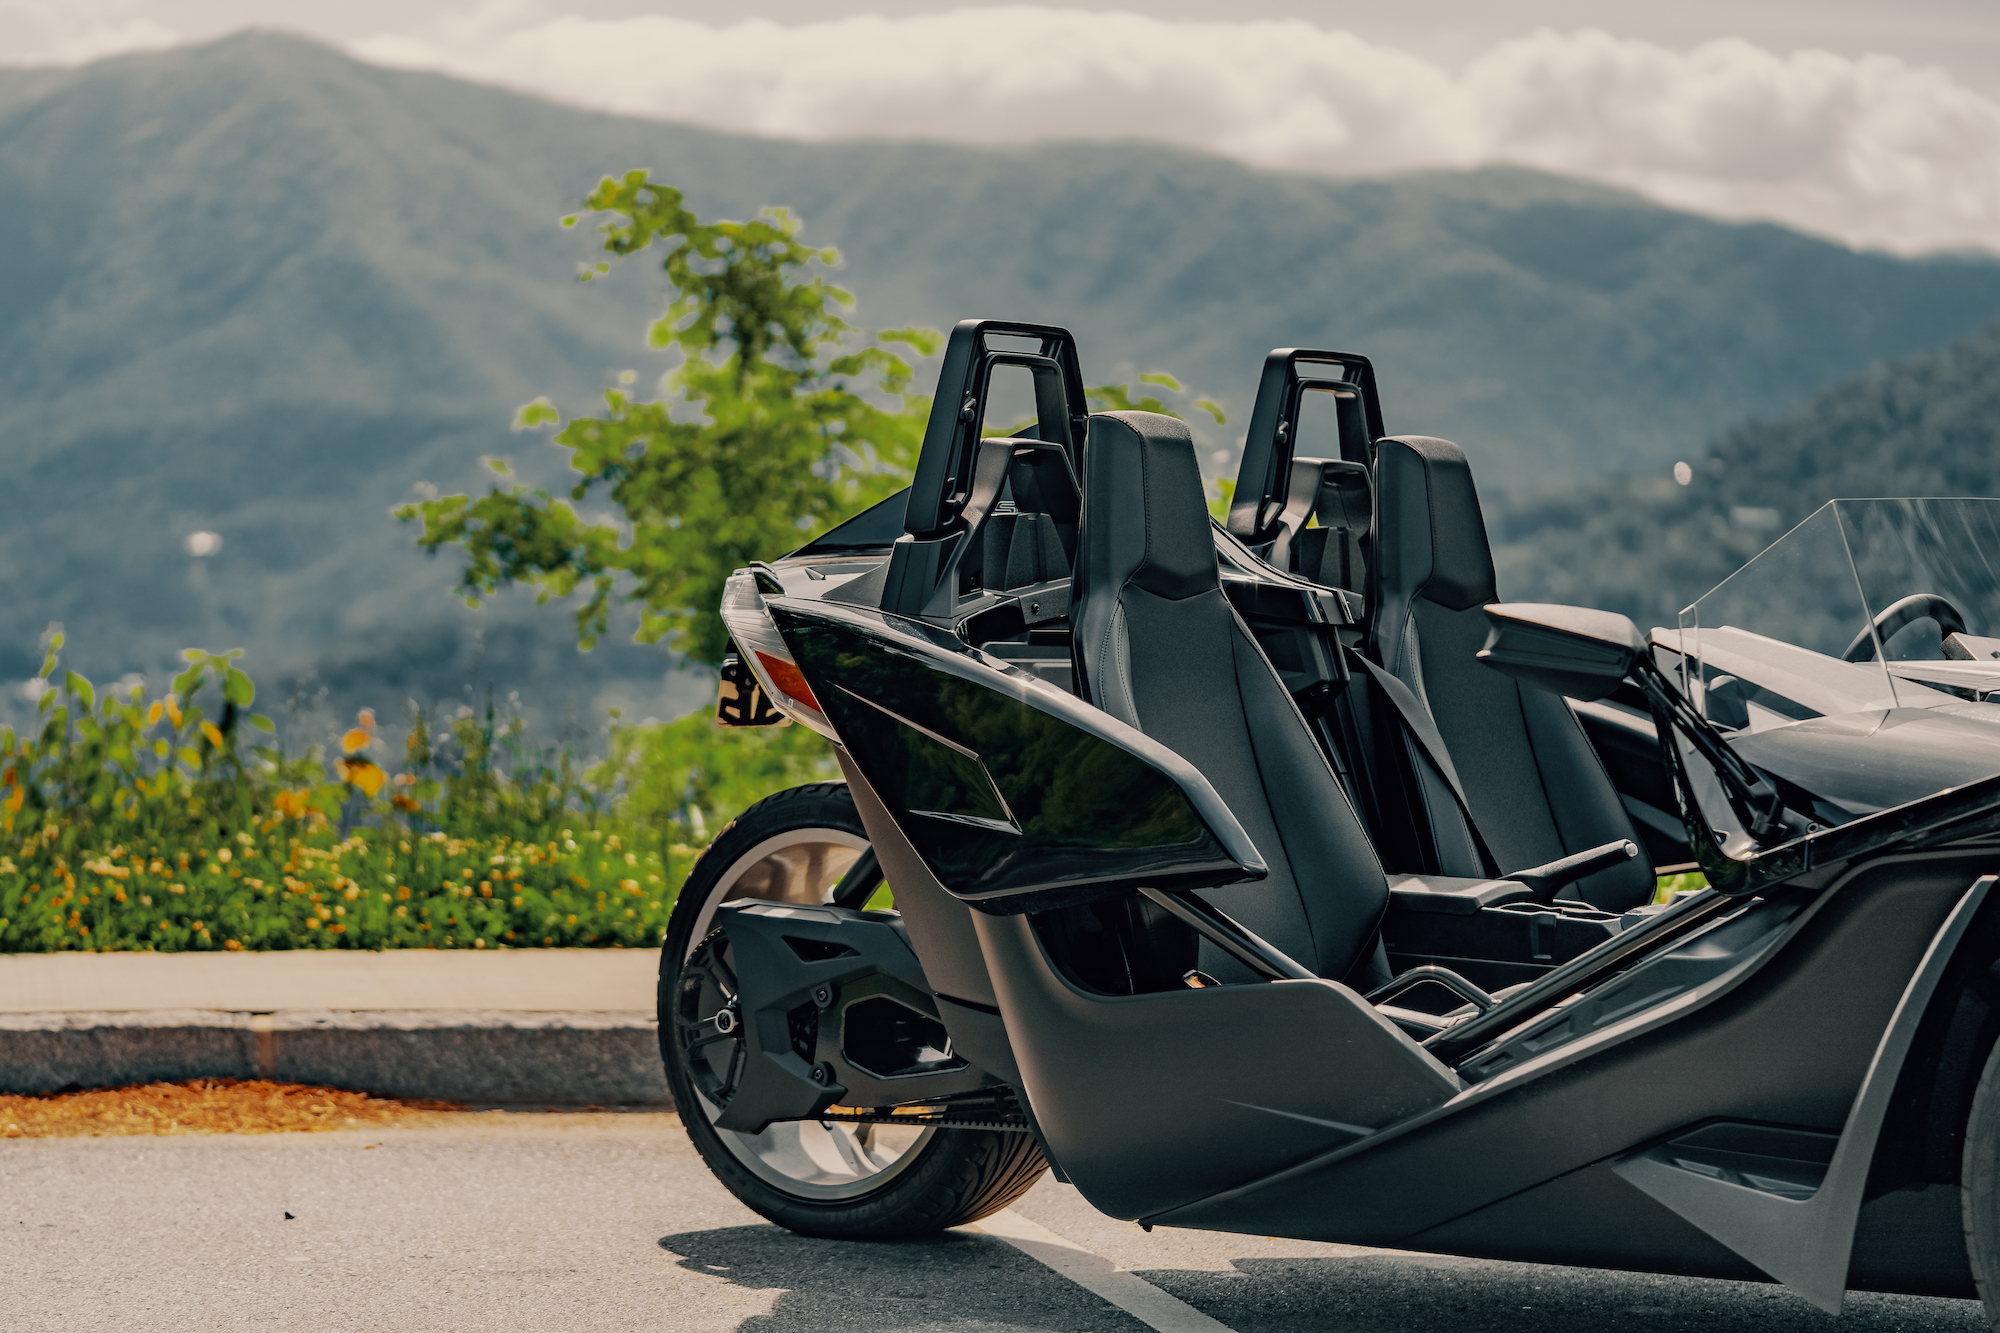 back wheel of the Polaris Slingshot - Polaris Slingshots are available as rentals at the Mountain Mile Mall at Mountain Mile Adventures in Pigeon Forge, Tennessee